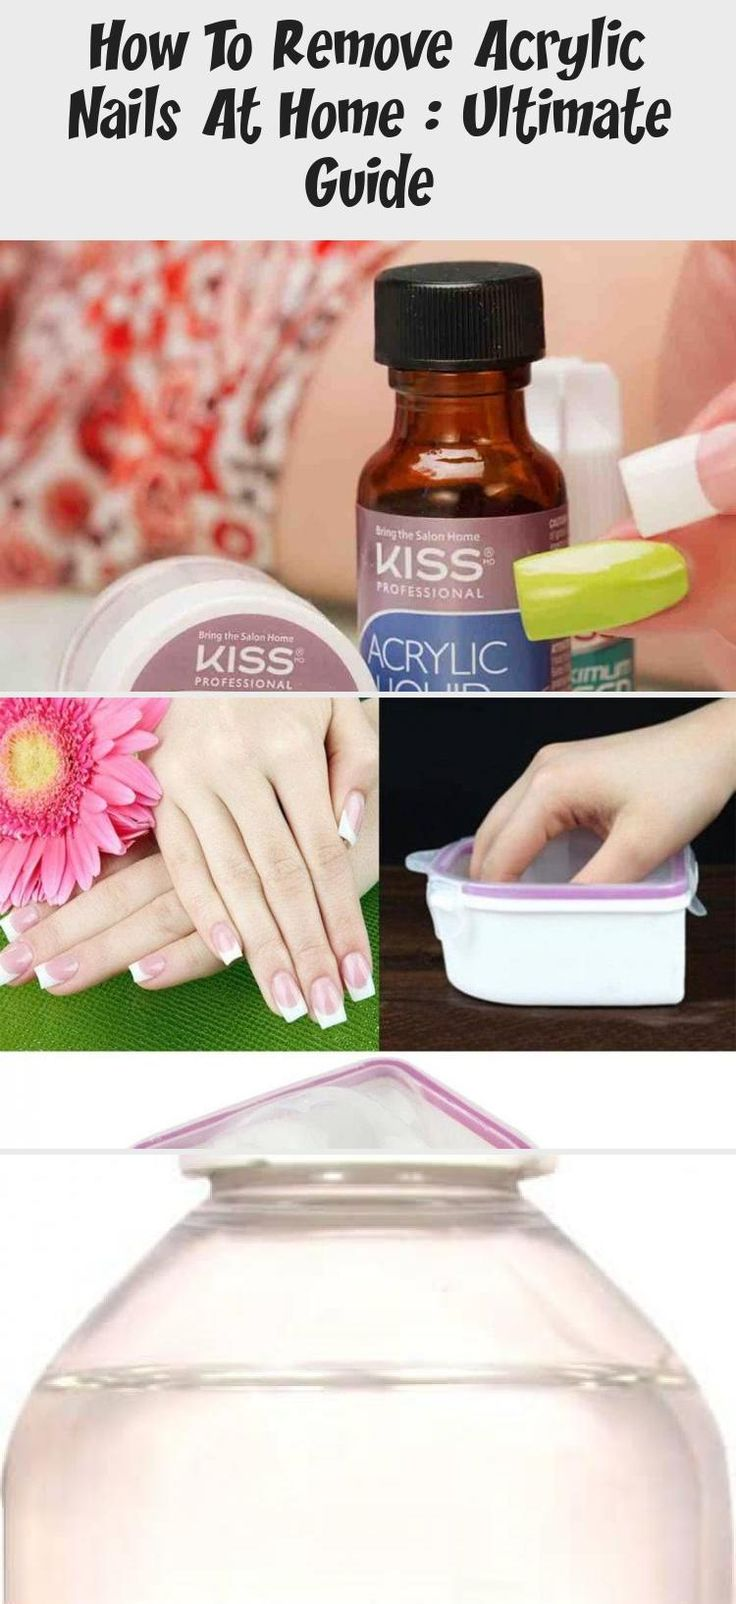 How To Remove Acrylic Nails At Home : Ultimate Guide # ...